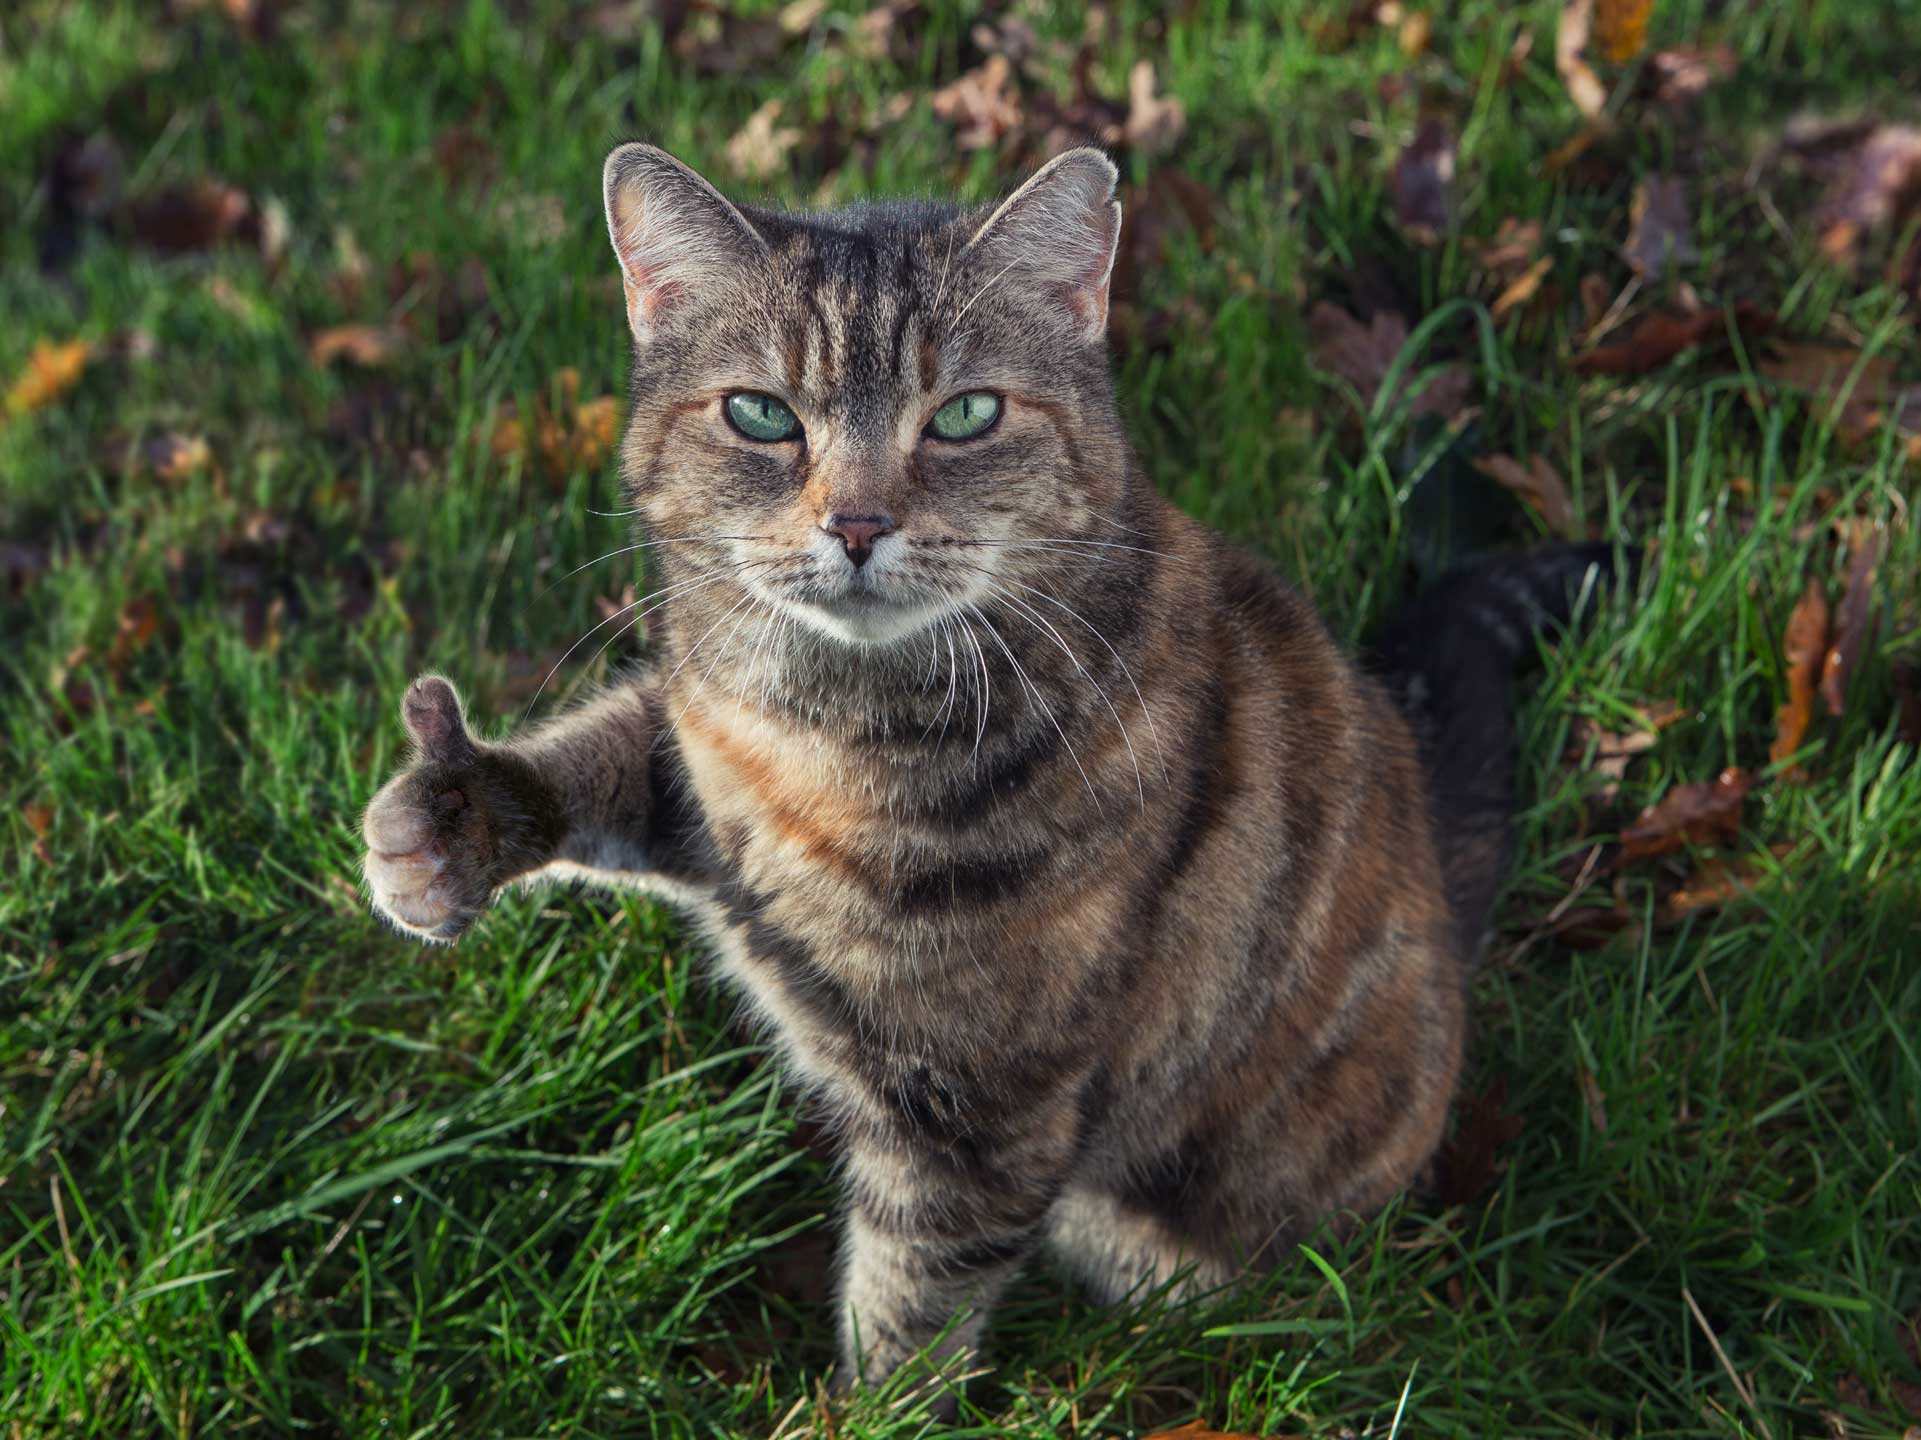 Alex Howe animals cat thumbs up indignant not fussed in grass garden